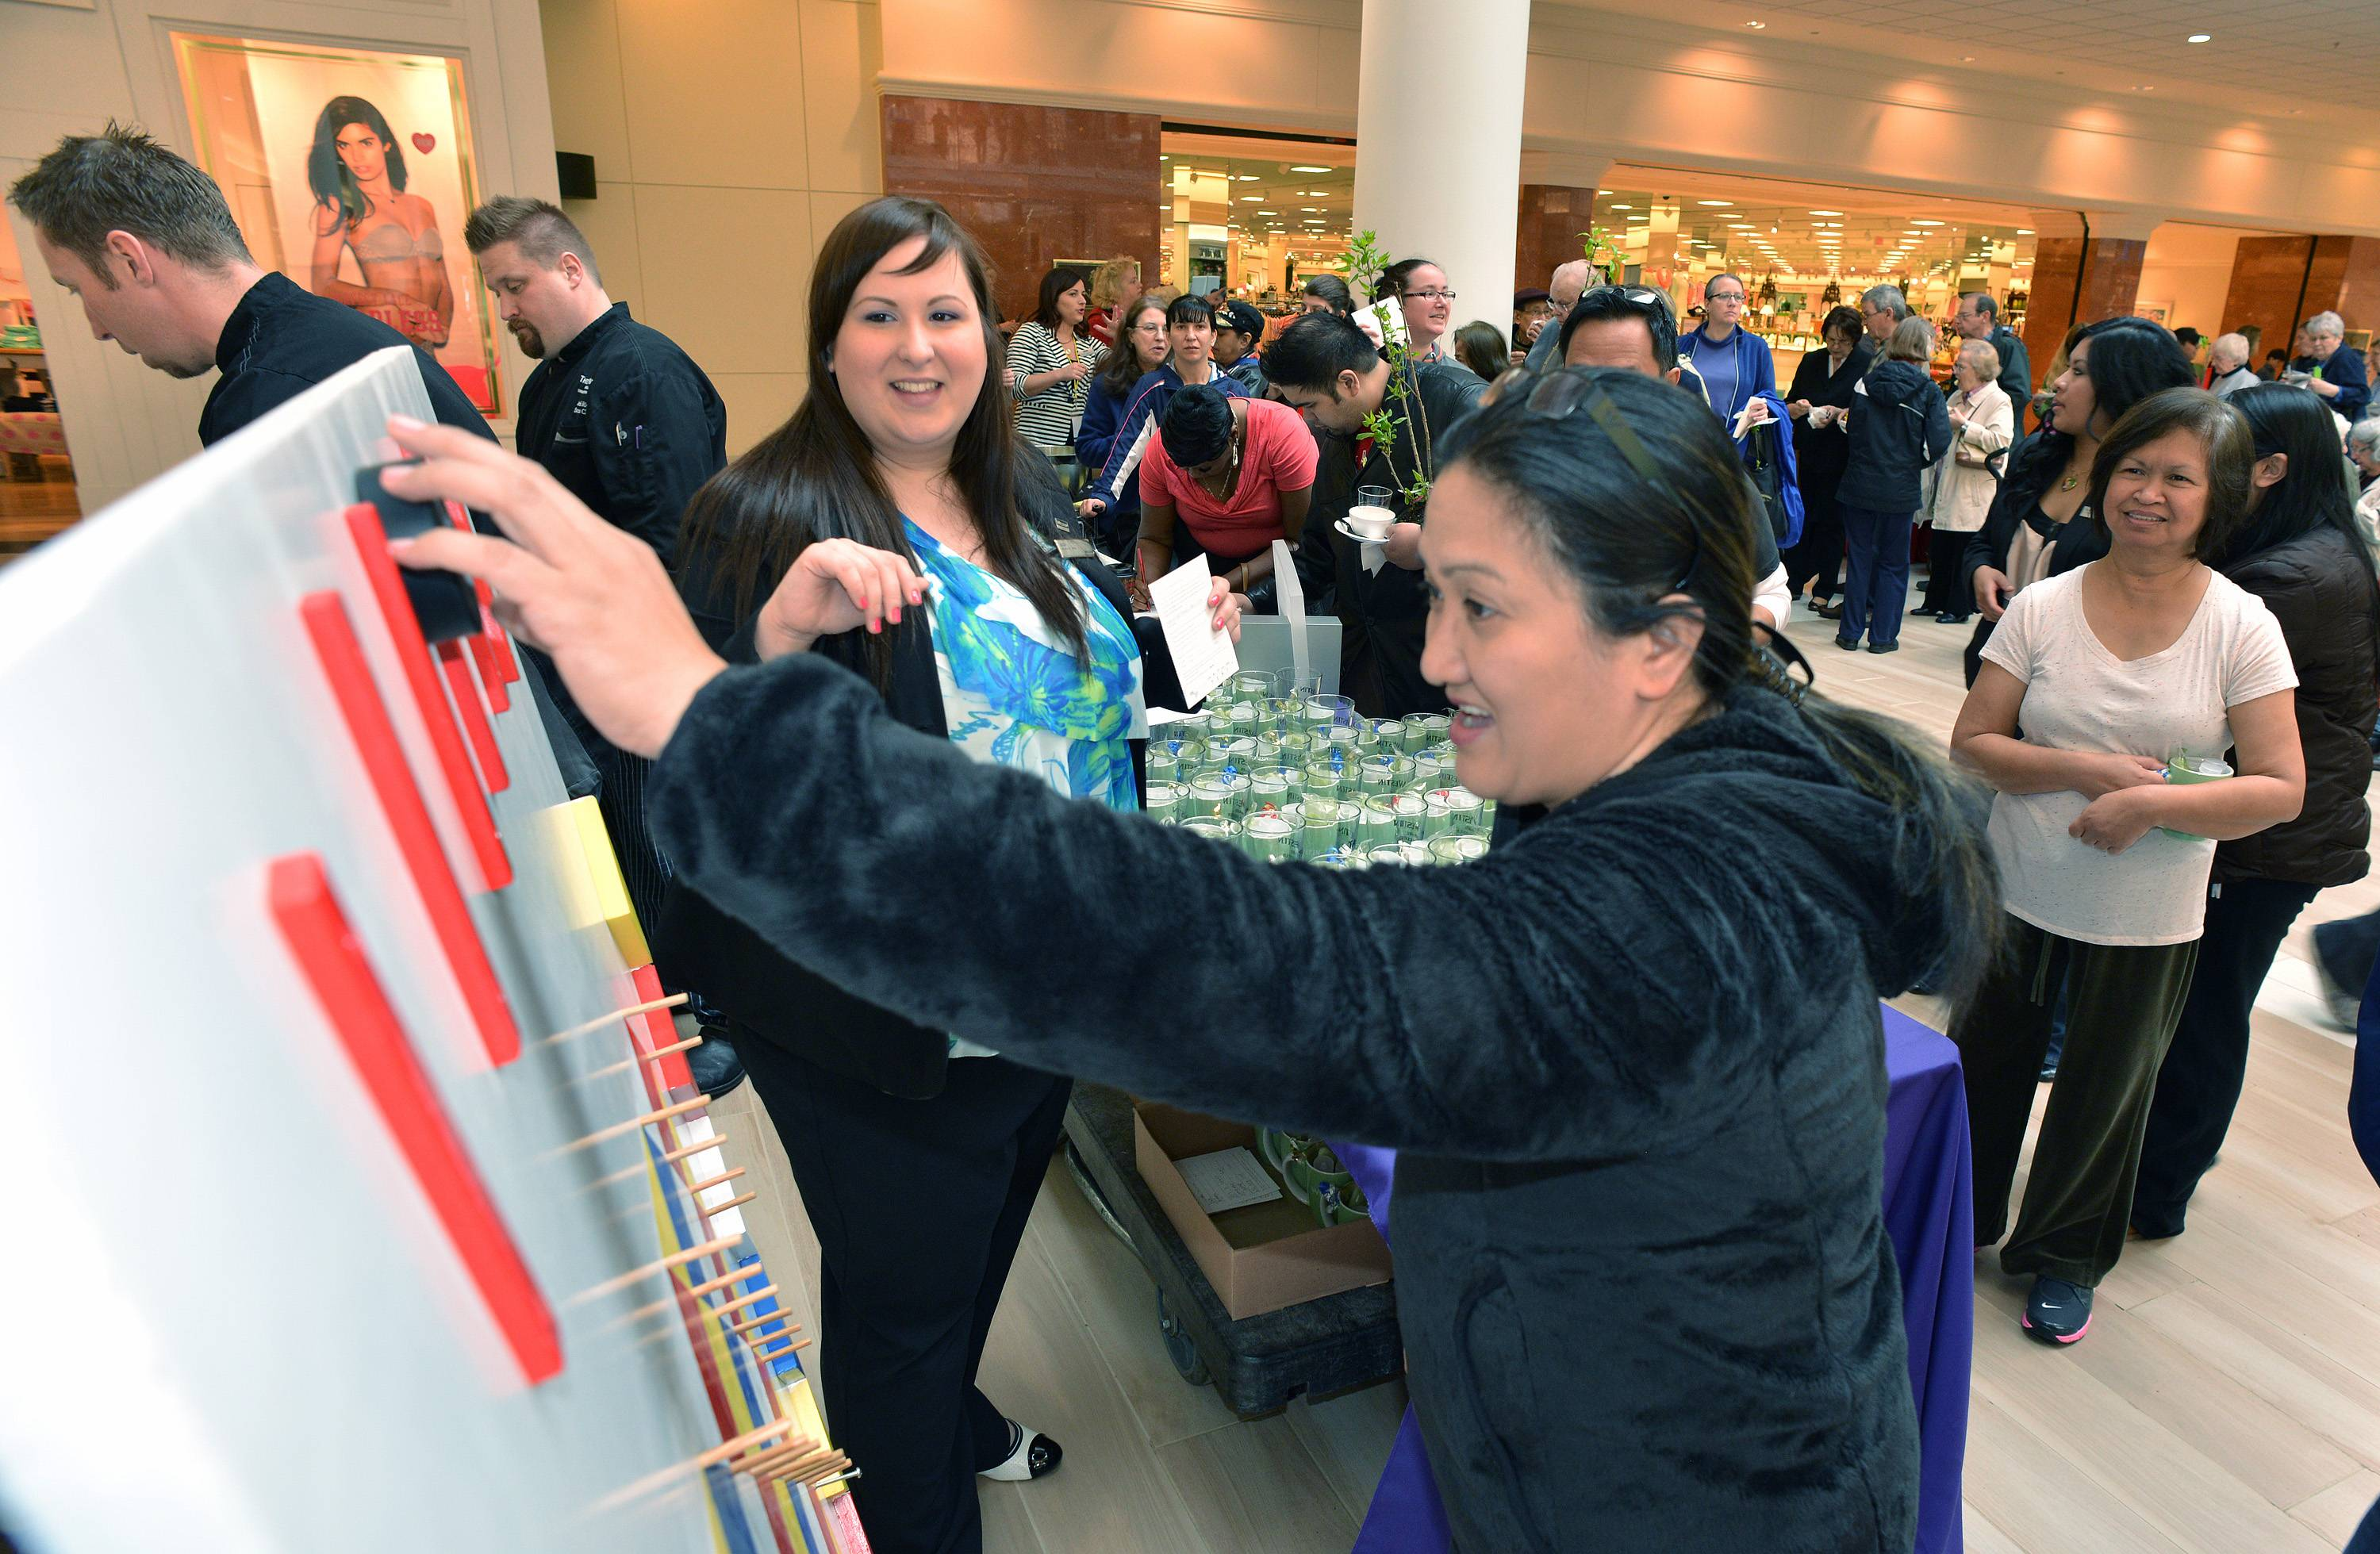 Julia Kochan, center left, from the Westin hotel, helps Agnesita Deasis, center right, play Plinko to try to win a free night at The Westin. Deasis didn't win, but she went home with a coffee mug filled with samples from the hotel. The activity was part of Yorktown Center's ribbon-cutting event Friday to celebrate the mall's $20 million renovation project.